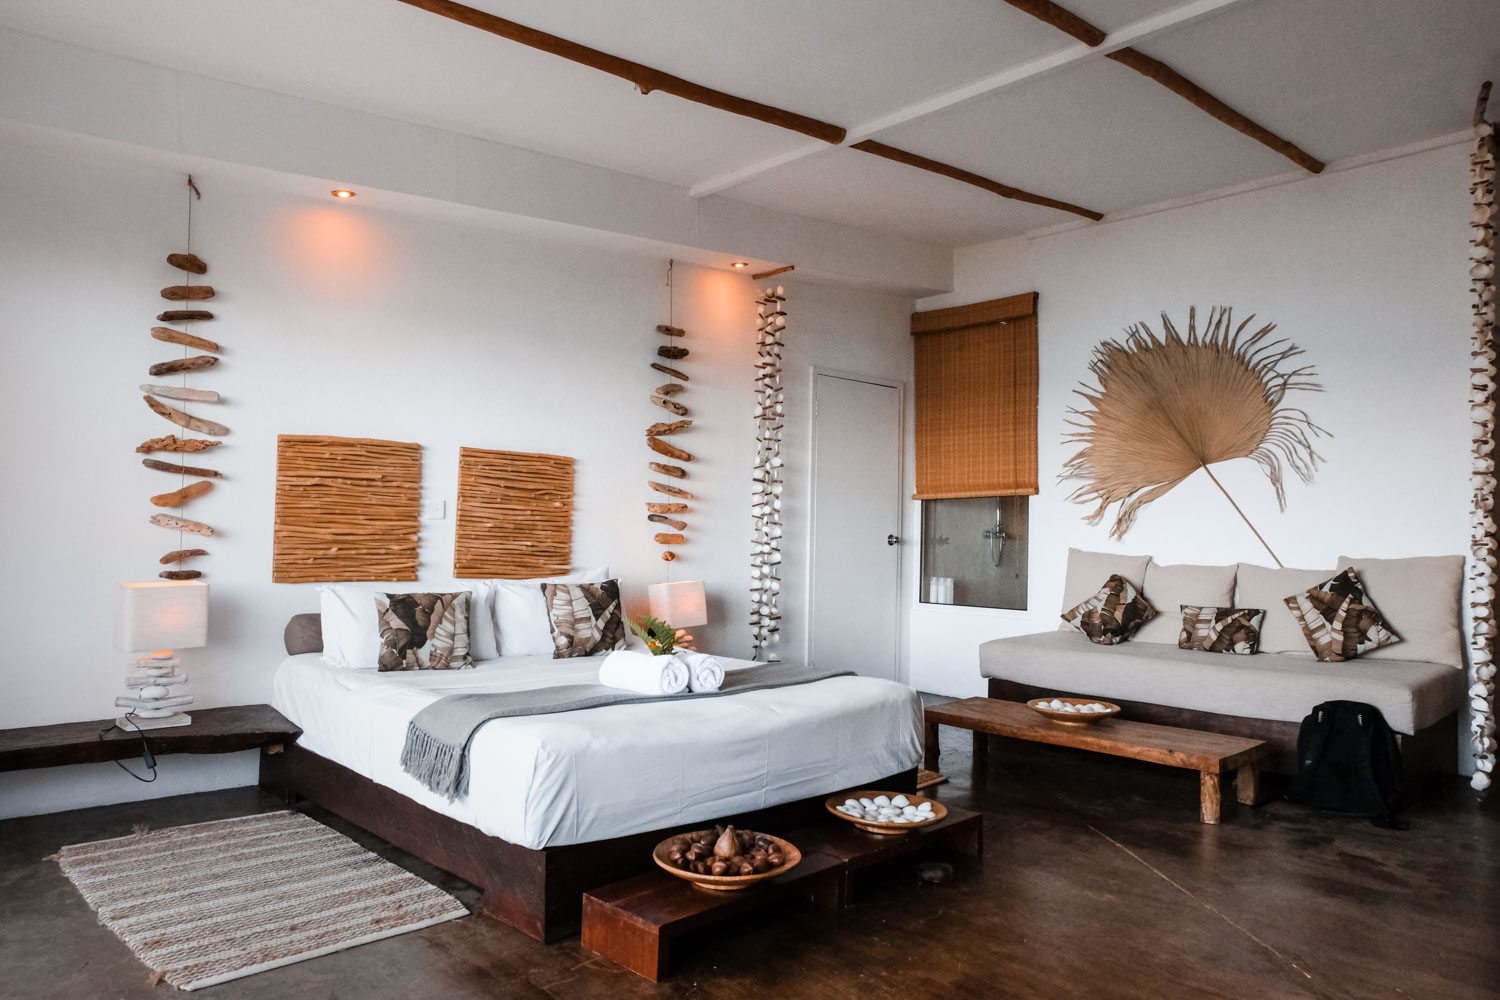 Seychelles - Where to stay in Mahe - Bliss Hotel